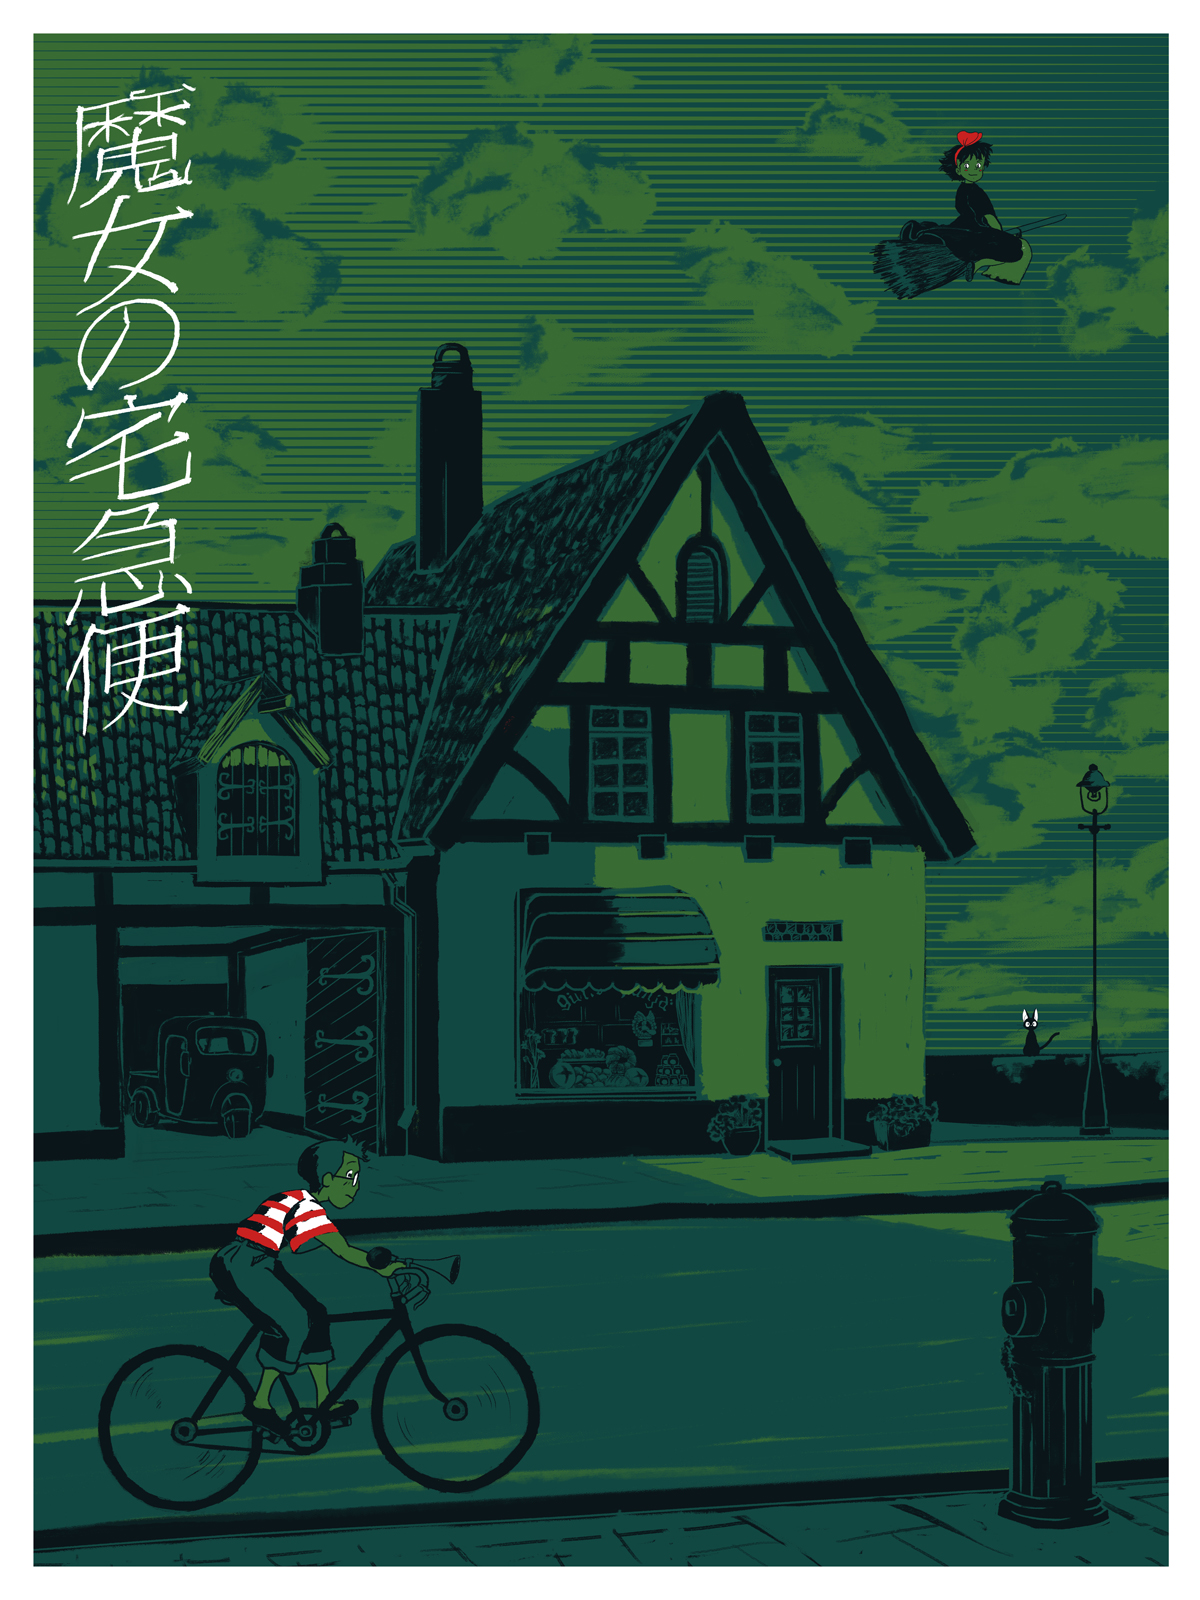 Kiki's Delivery Service Alternative Movie Poster Illustration